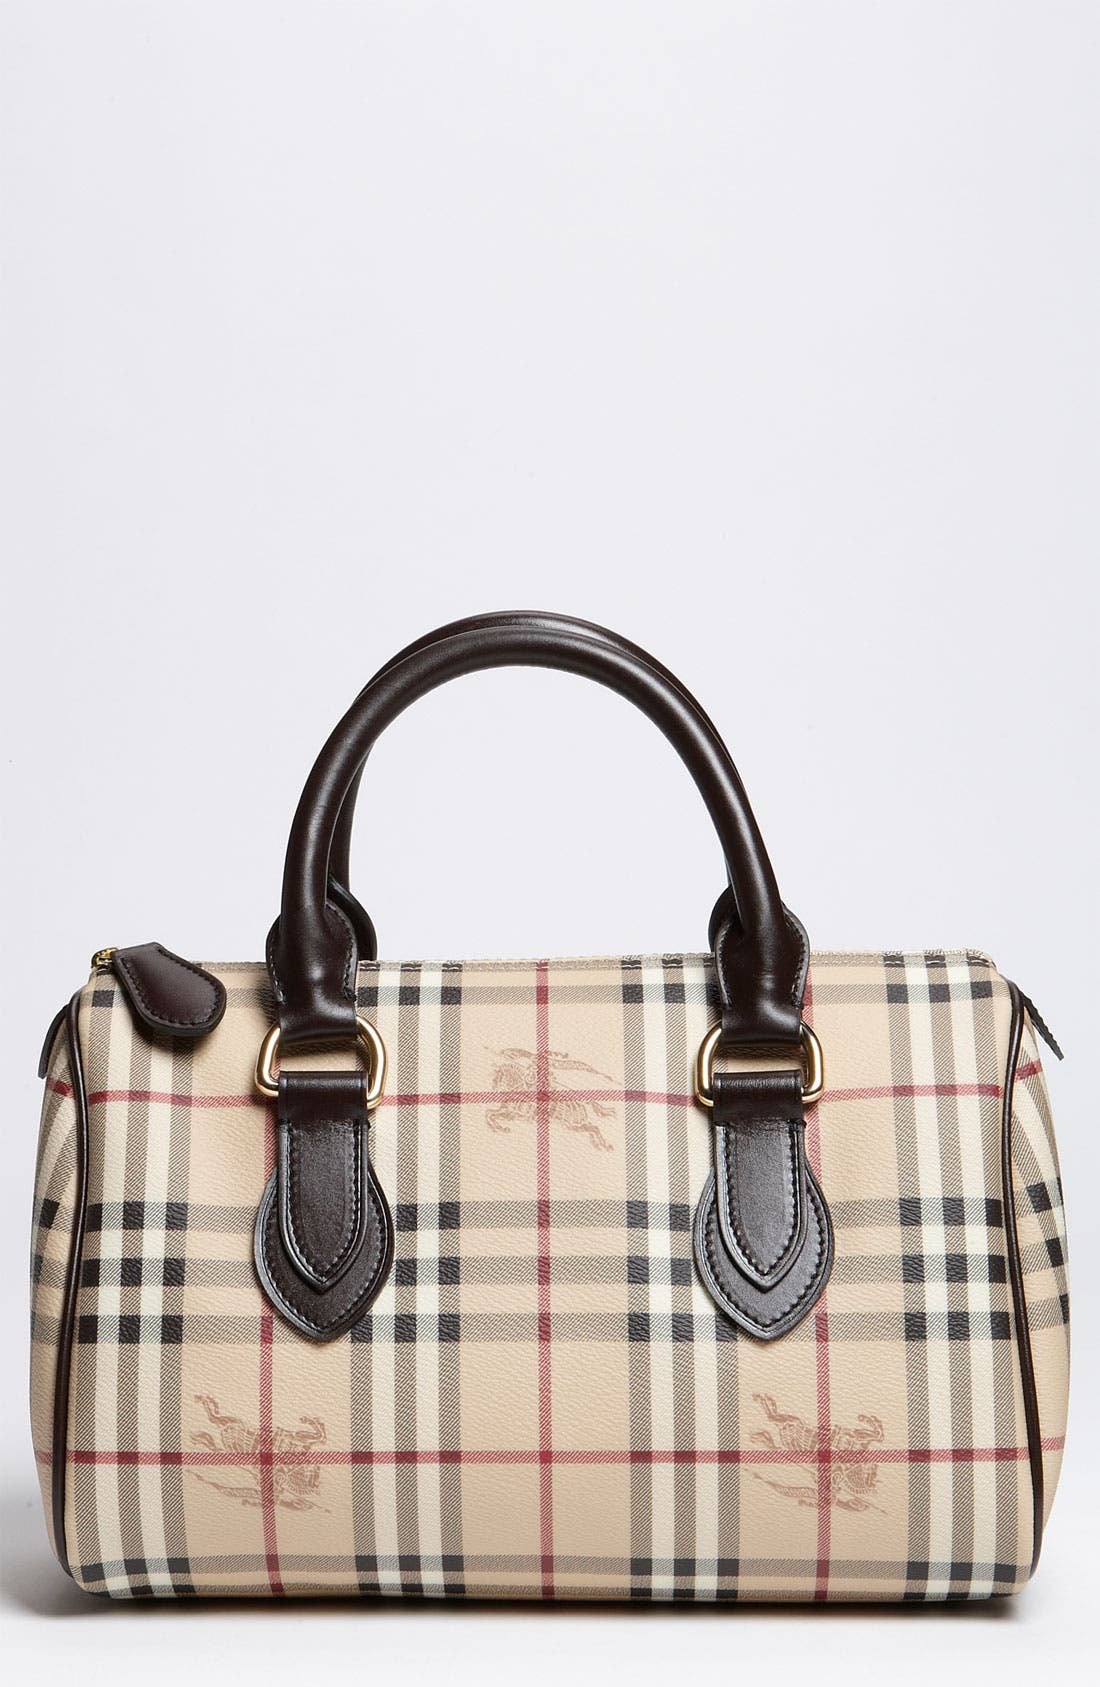 Main Image - Burberry 'Haymarket Check' Satchel